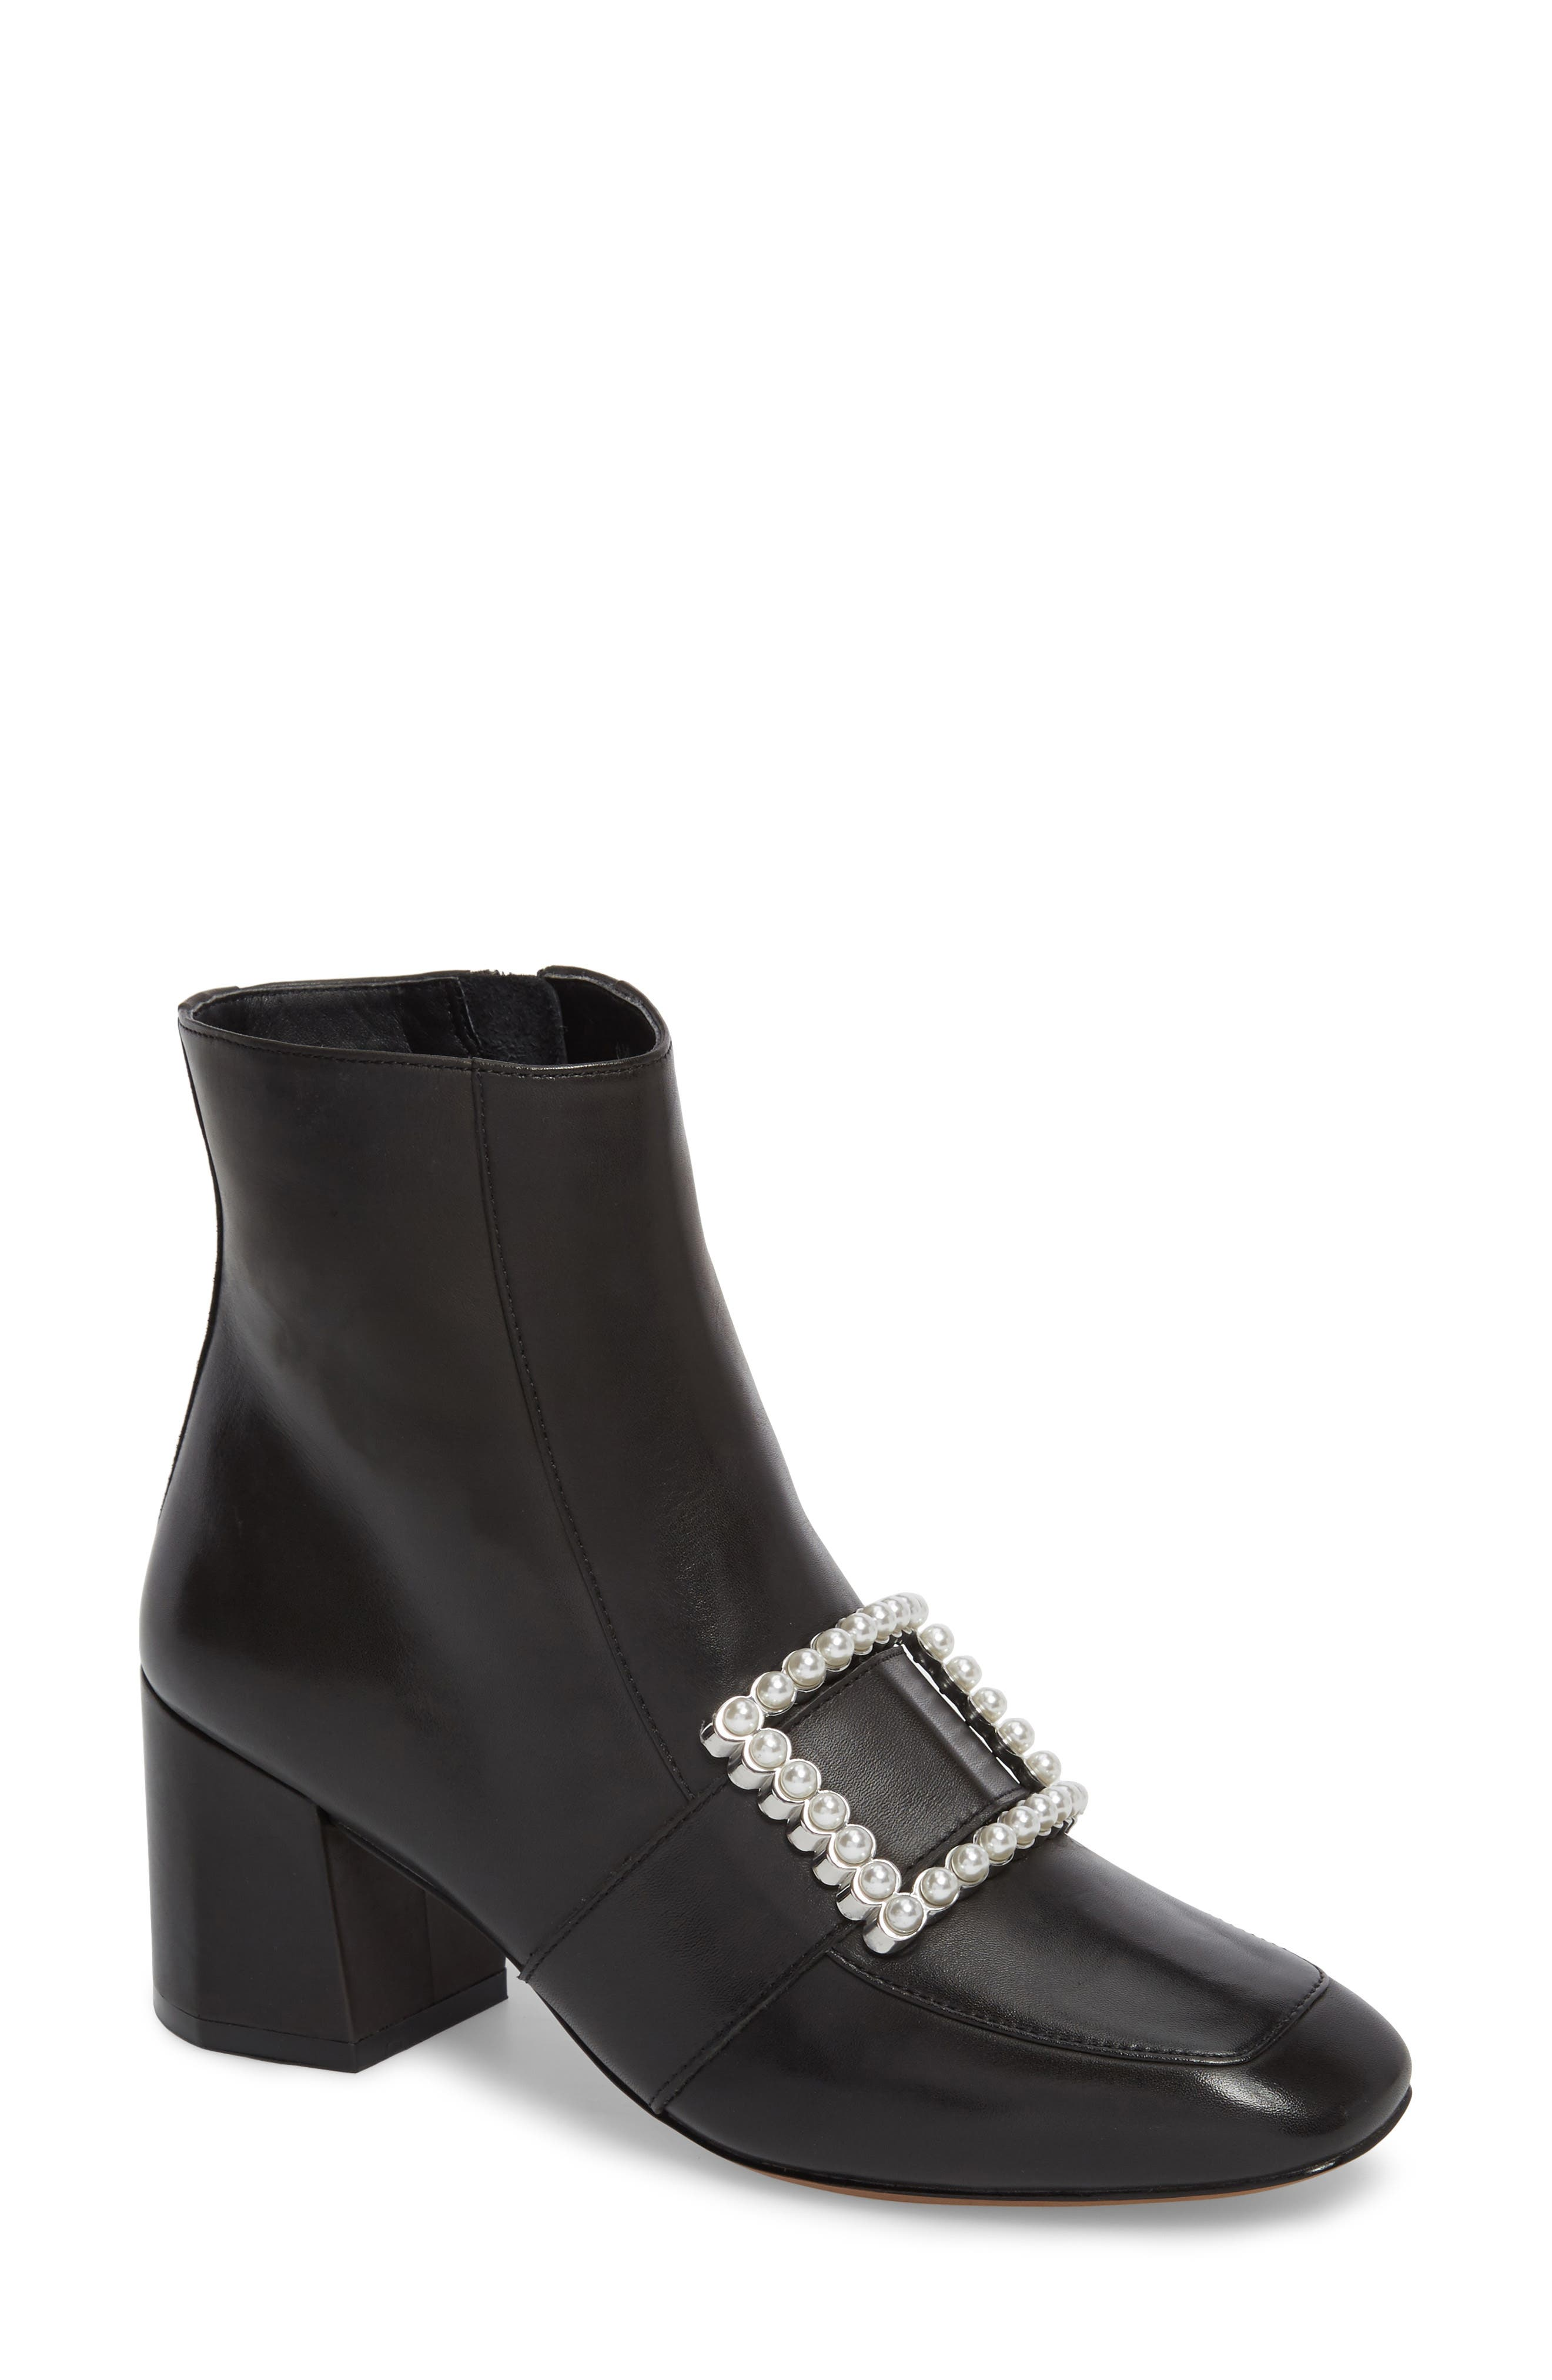 Alternate Image 1 Selected - Linea Paolo Cadence Buckle Bootie (Women)